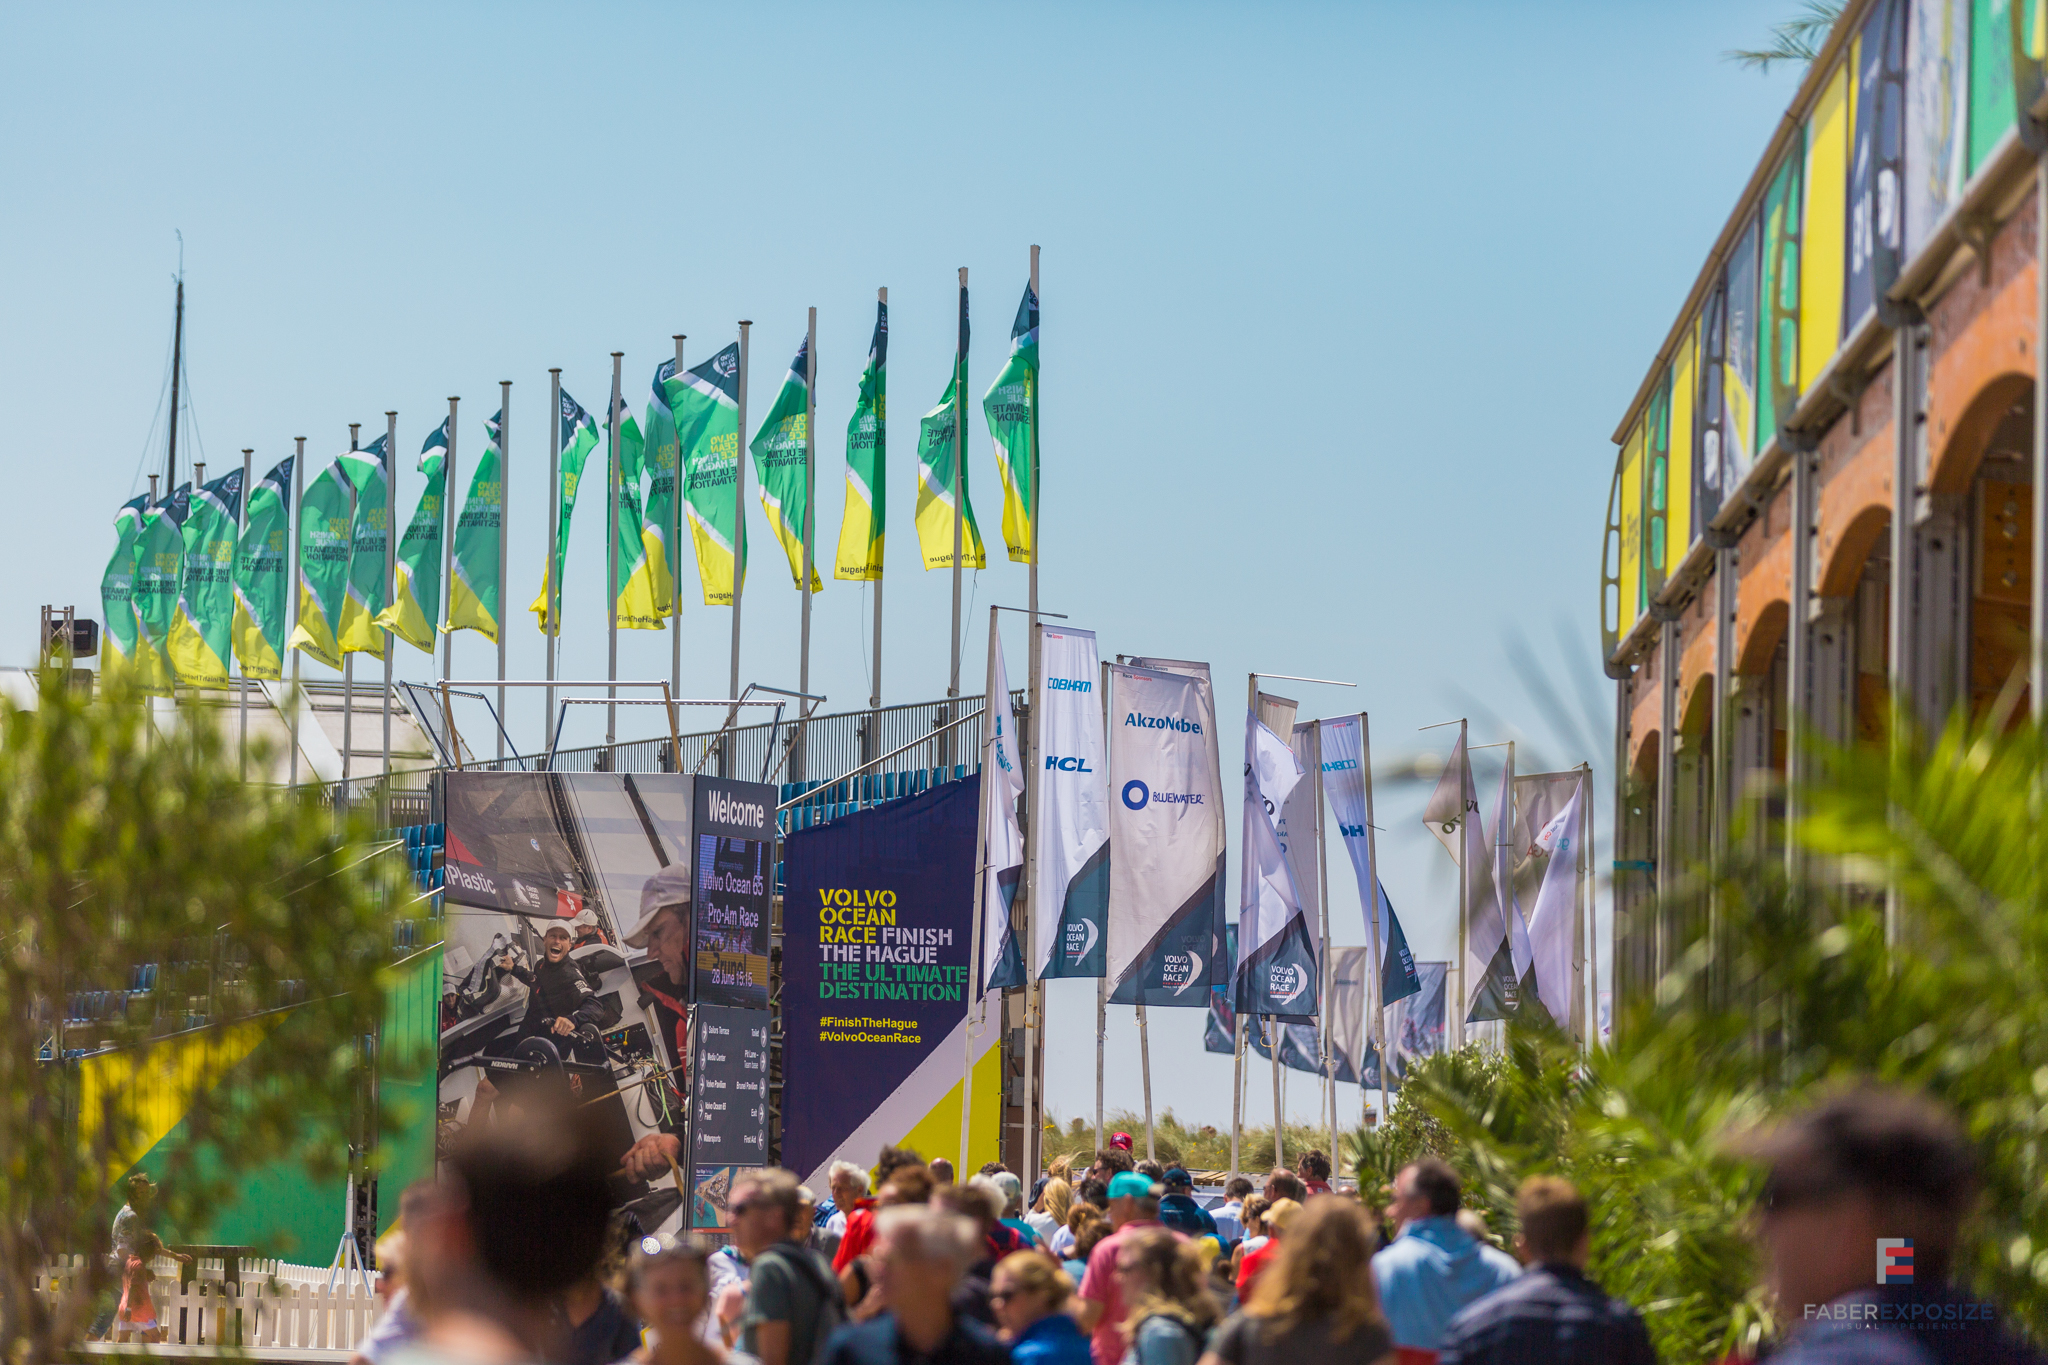 Flags, Banners